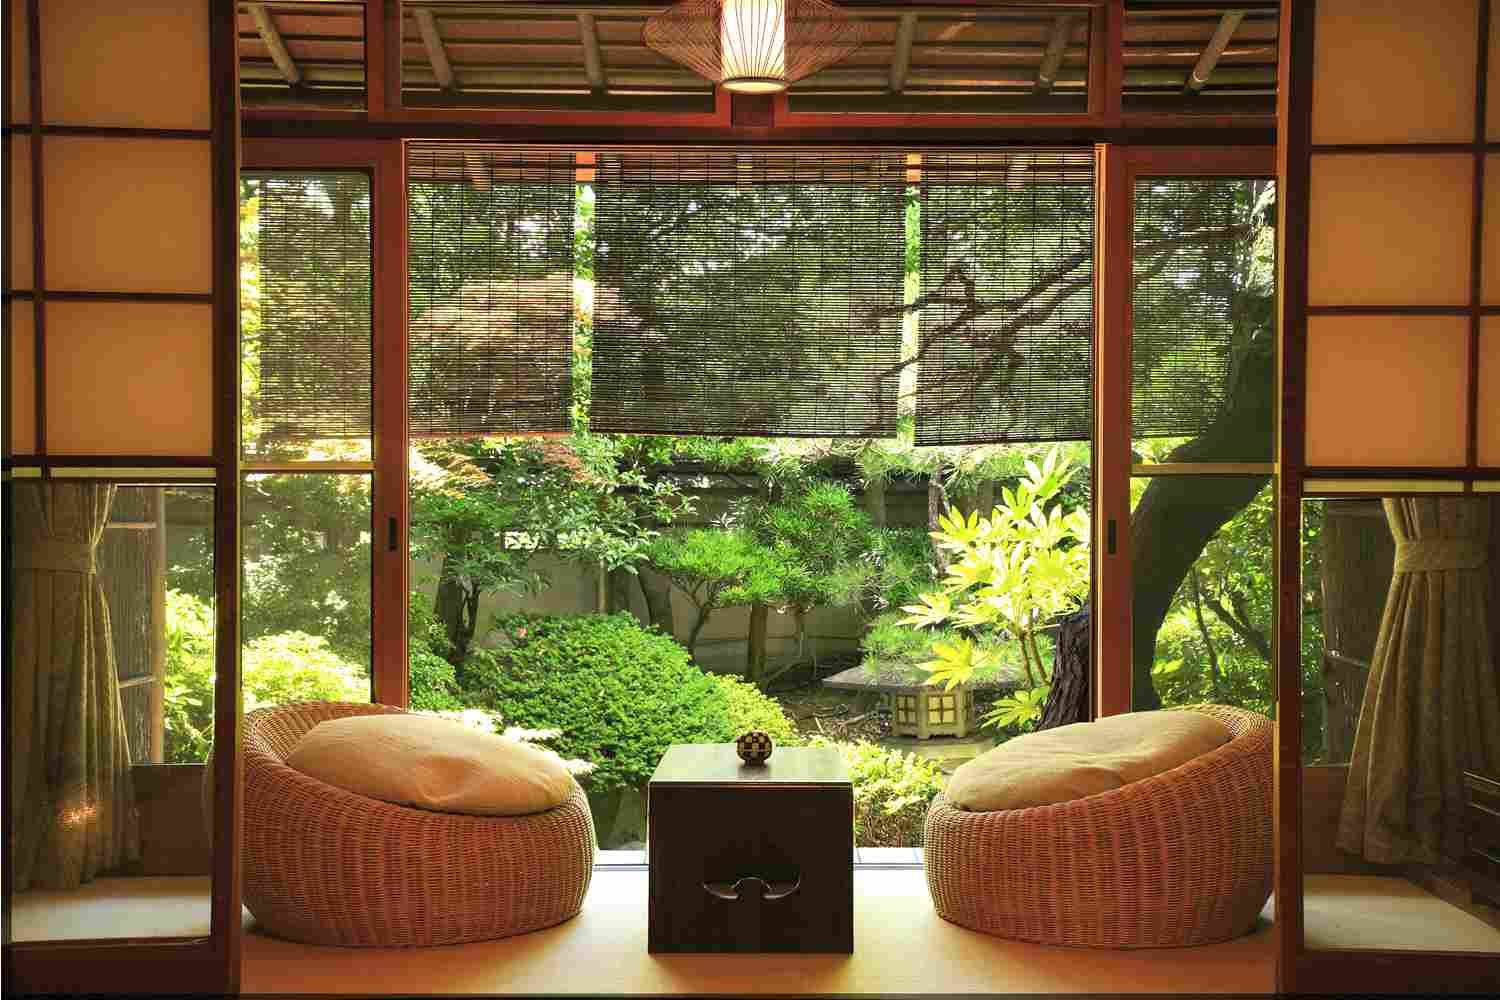 Attractive Explore Japanese Interior Design, Asian Design And More!